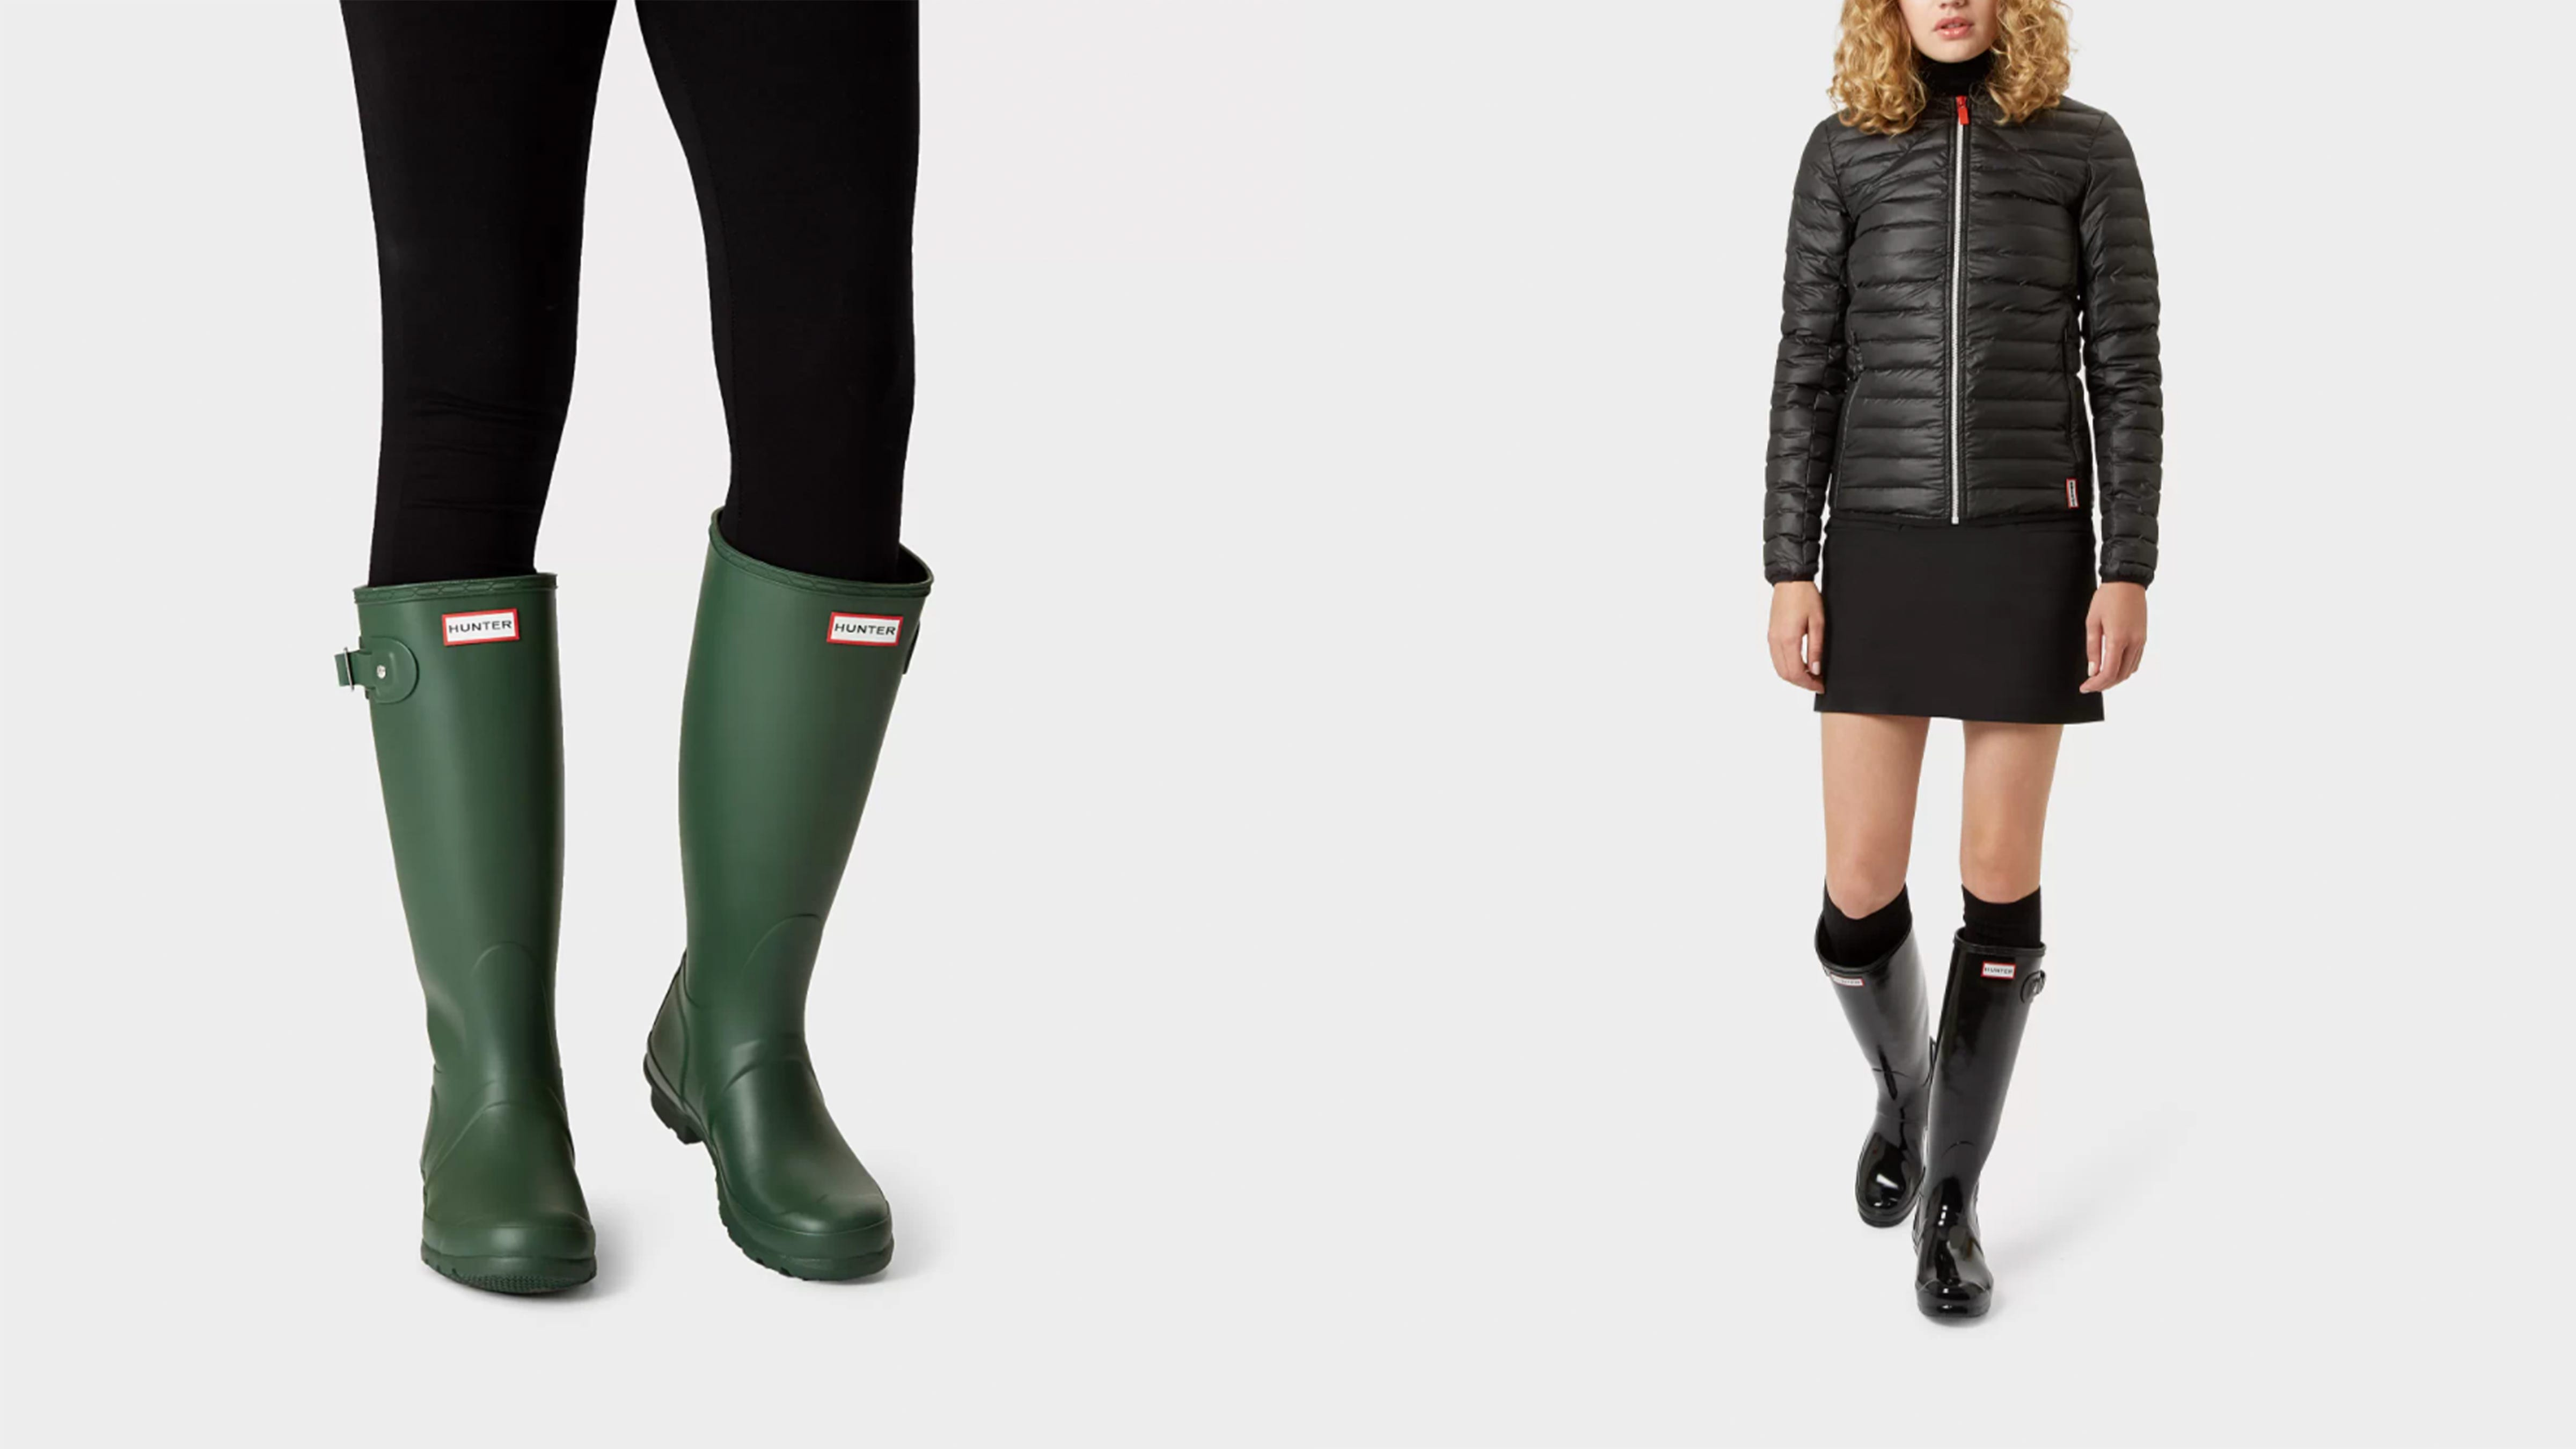 Hunter boots sale: Save big on these